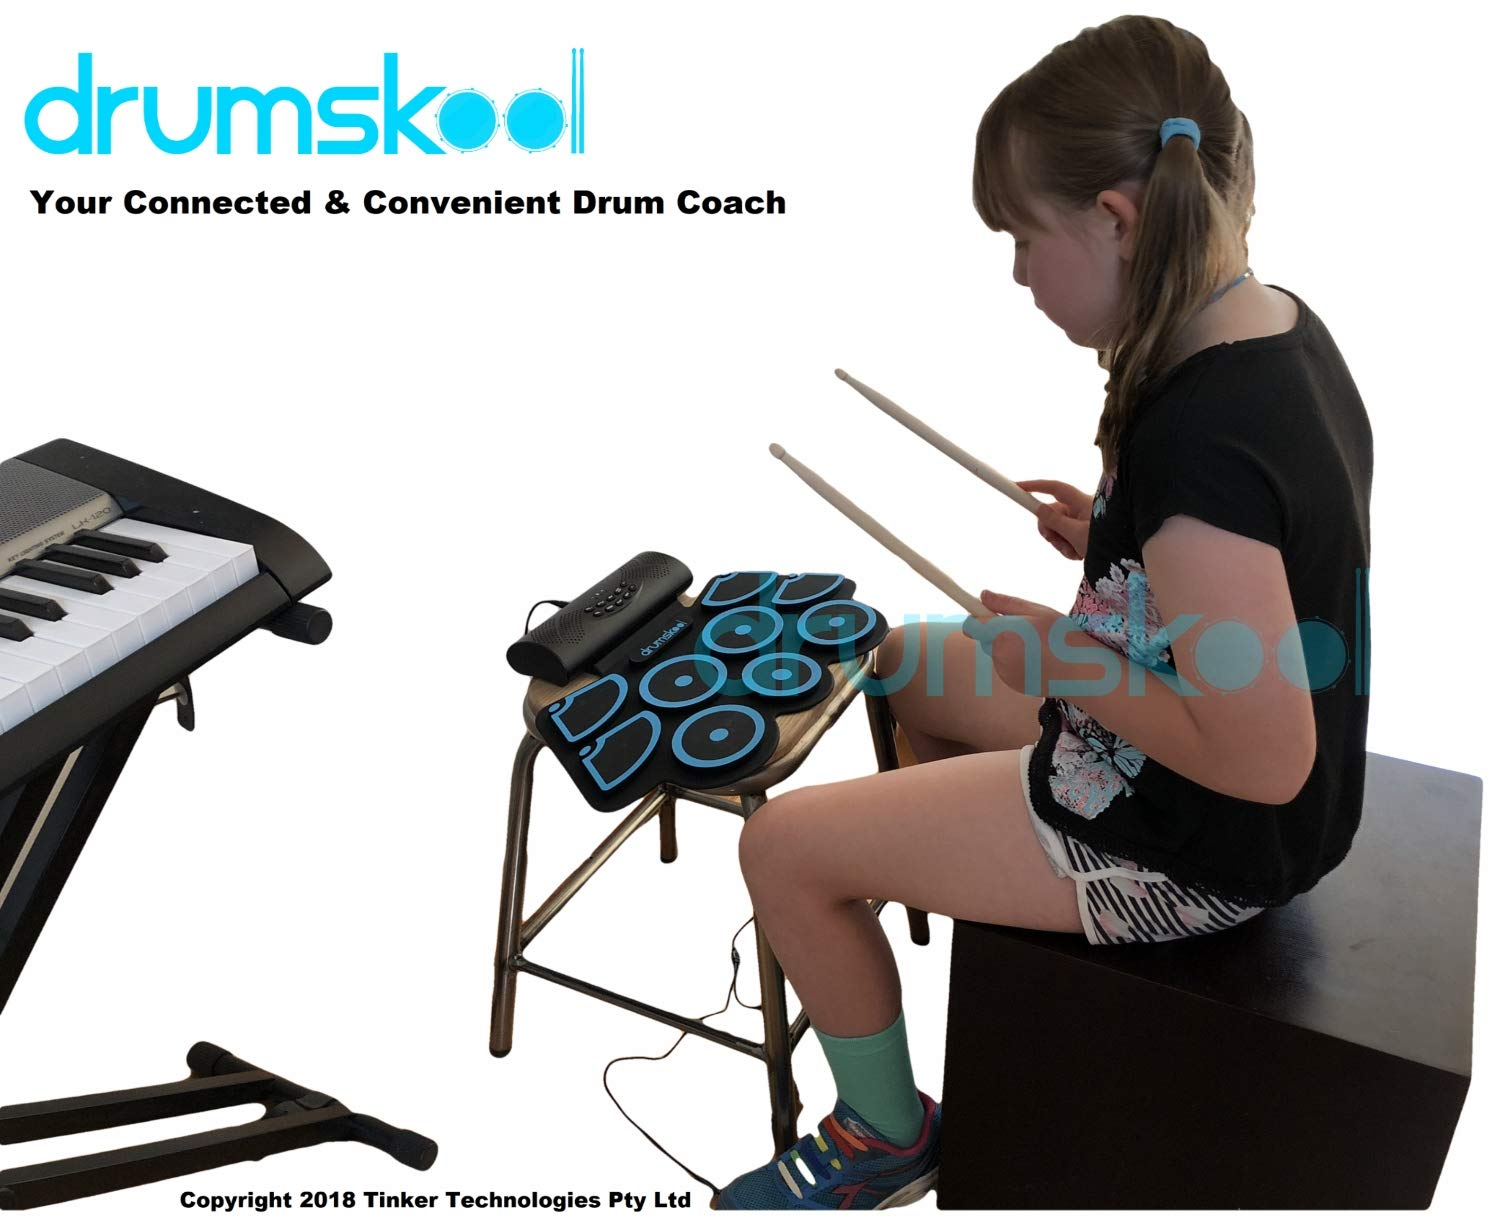 Drumskool Electronic Drum Set, MIDI Electric drum kit, Connect your phone to play along with included Drum Lessons, Speakers, Drum Pedals, Drum Sticks, 10 hours play time, Quickstart Guide by Drumskool (Image #9)